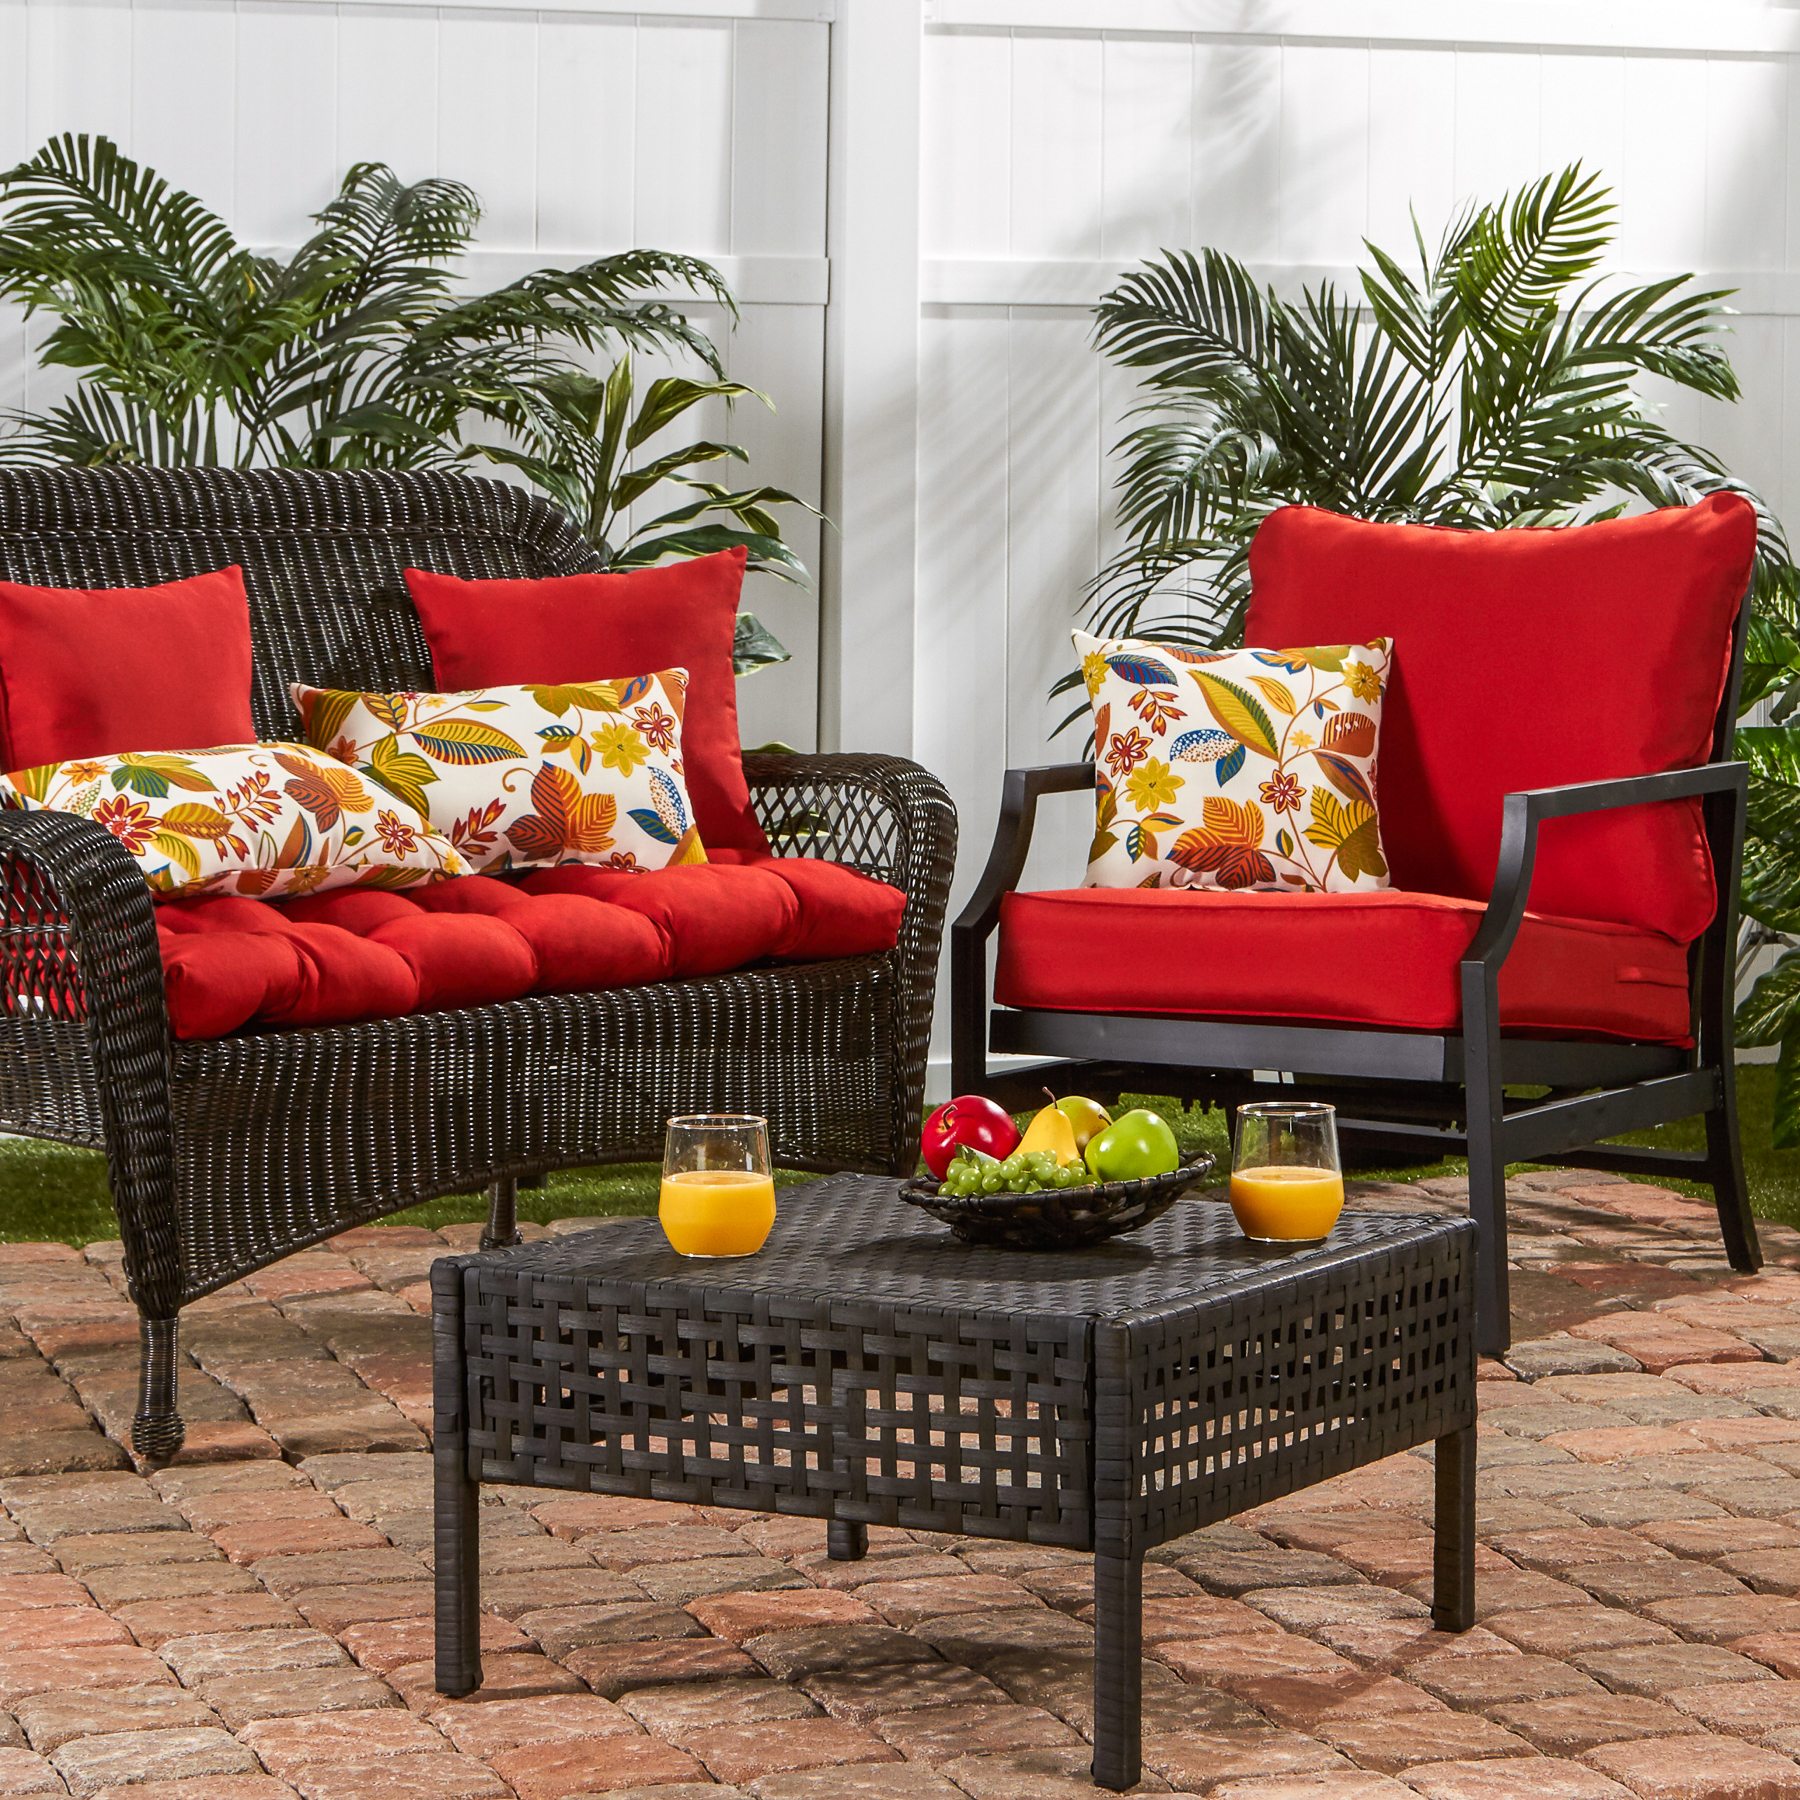 Salsa Greendale Home Fashions Outdoor Seat//Back Chair Cushion set of 2